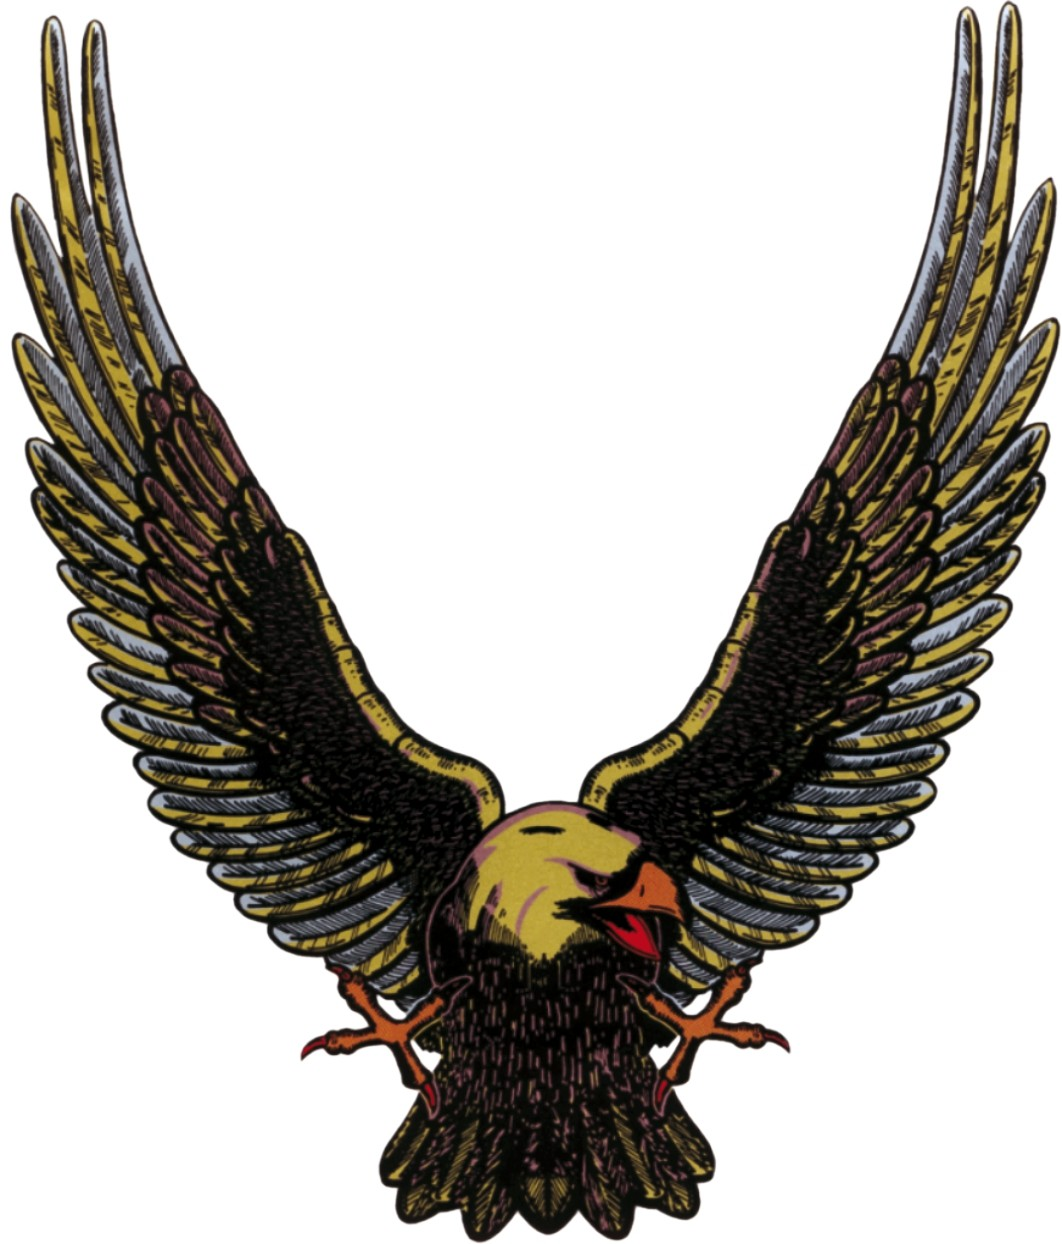 Sticker eagle gold 250 x 210 mm